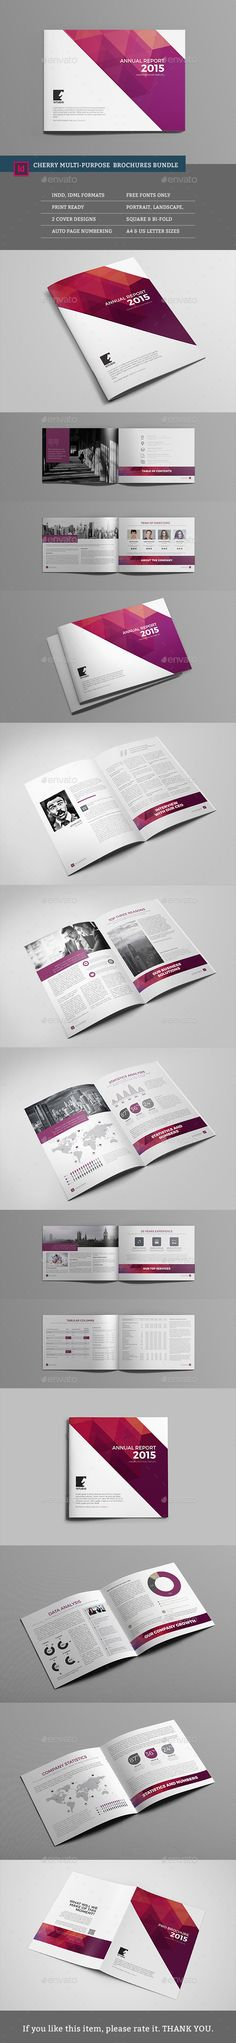 Bundle - Cherry Business Brochures Template PSD #design Download: http://graphicriver.net/item/bundle-cherry-business-brochures/14312736?ref=ksioks